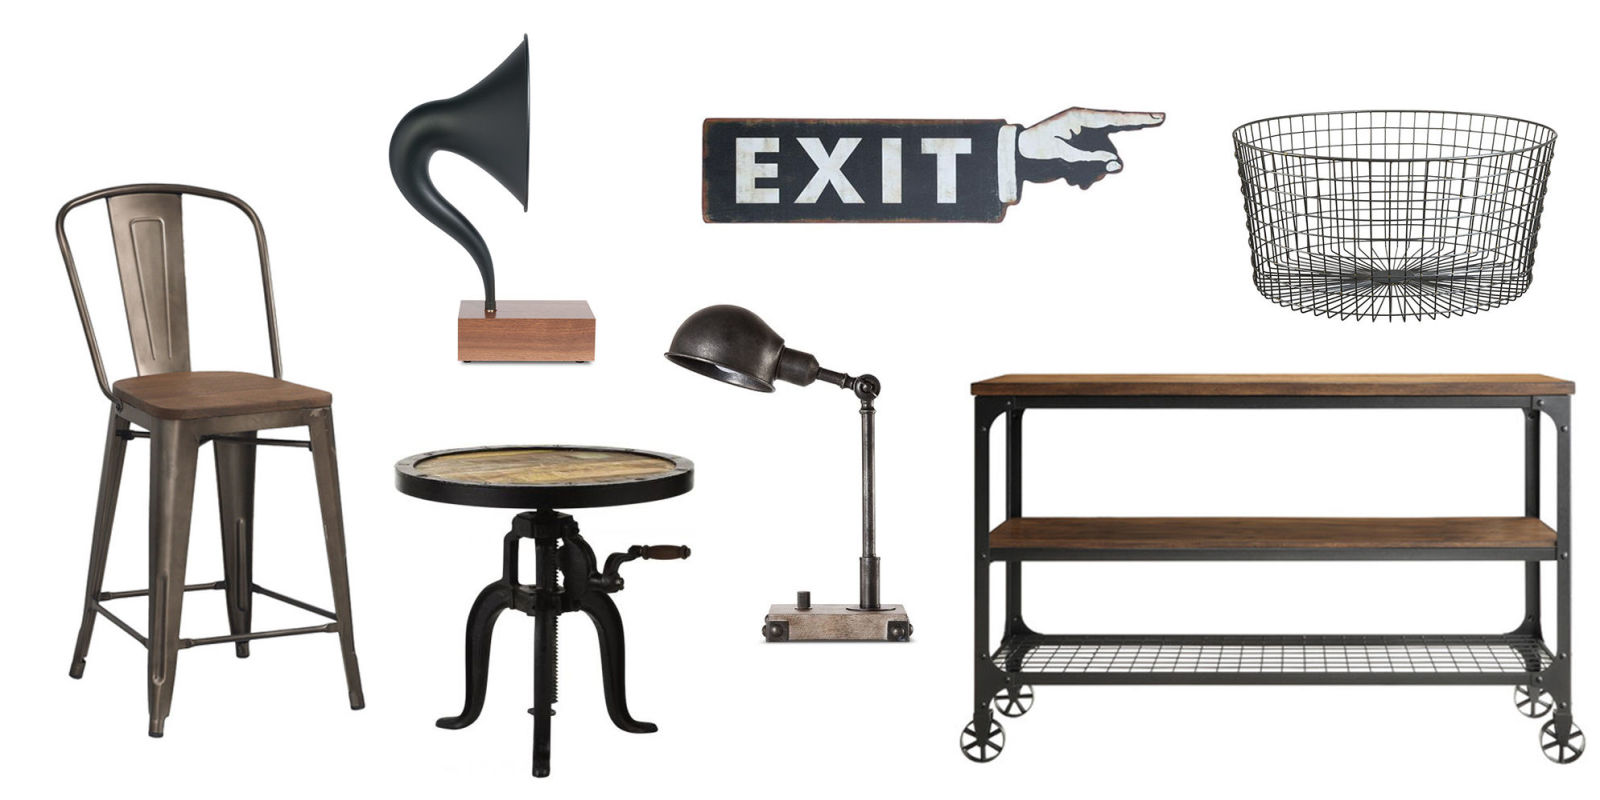 Industrial Chic Decor 12 Best Industrial Decor And Furniture Of 2018 Ideas For